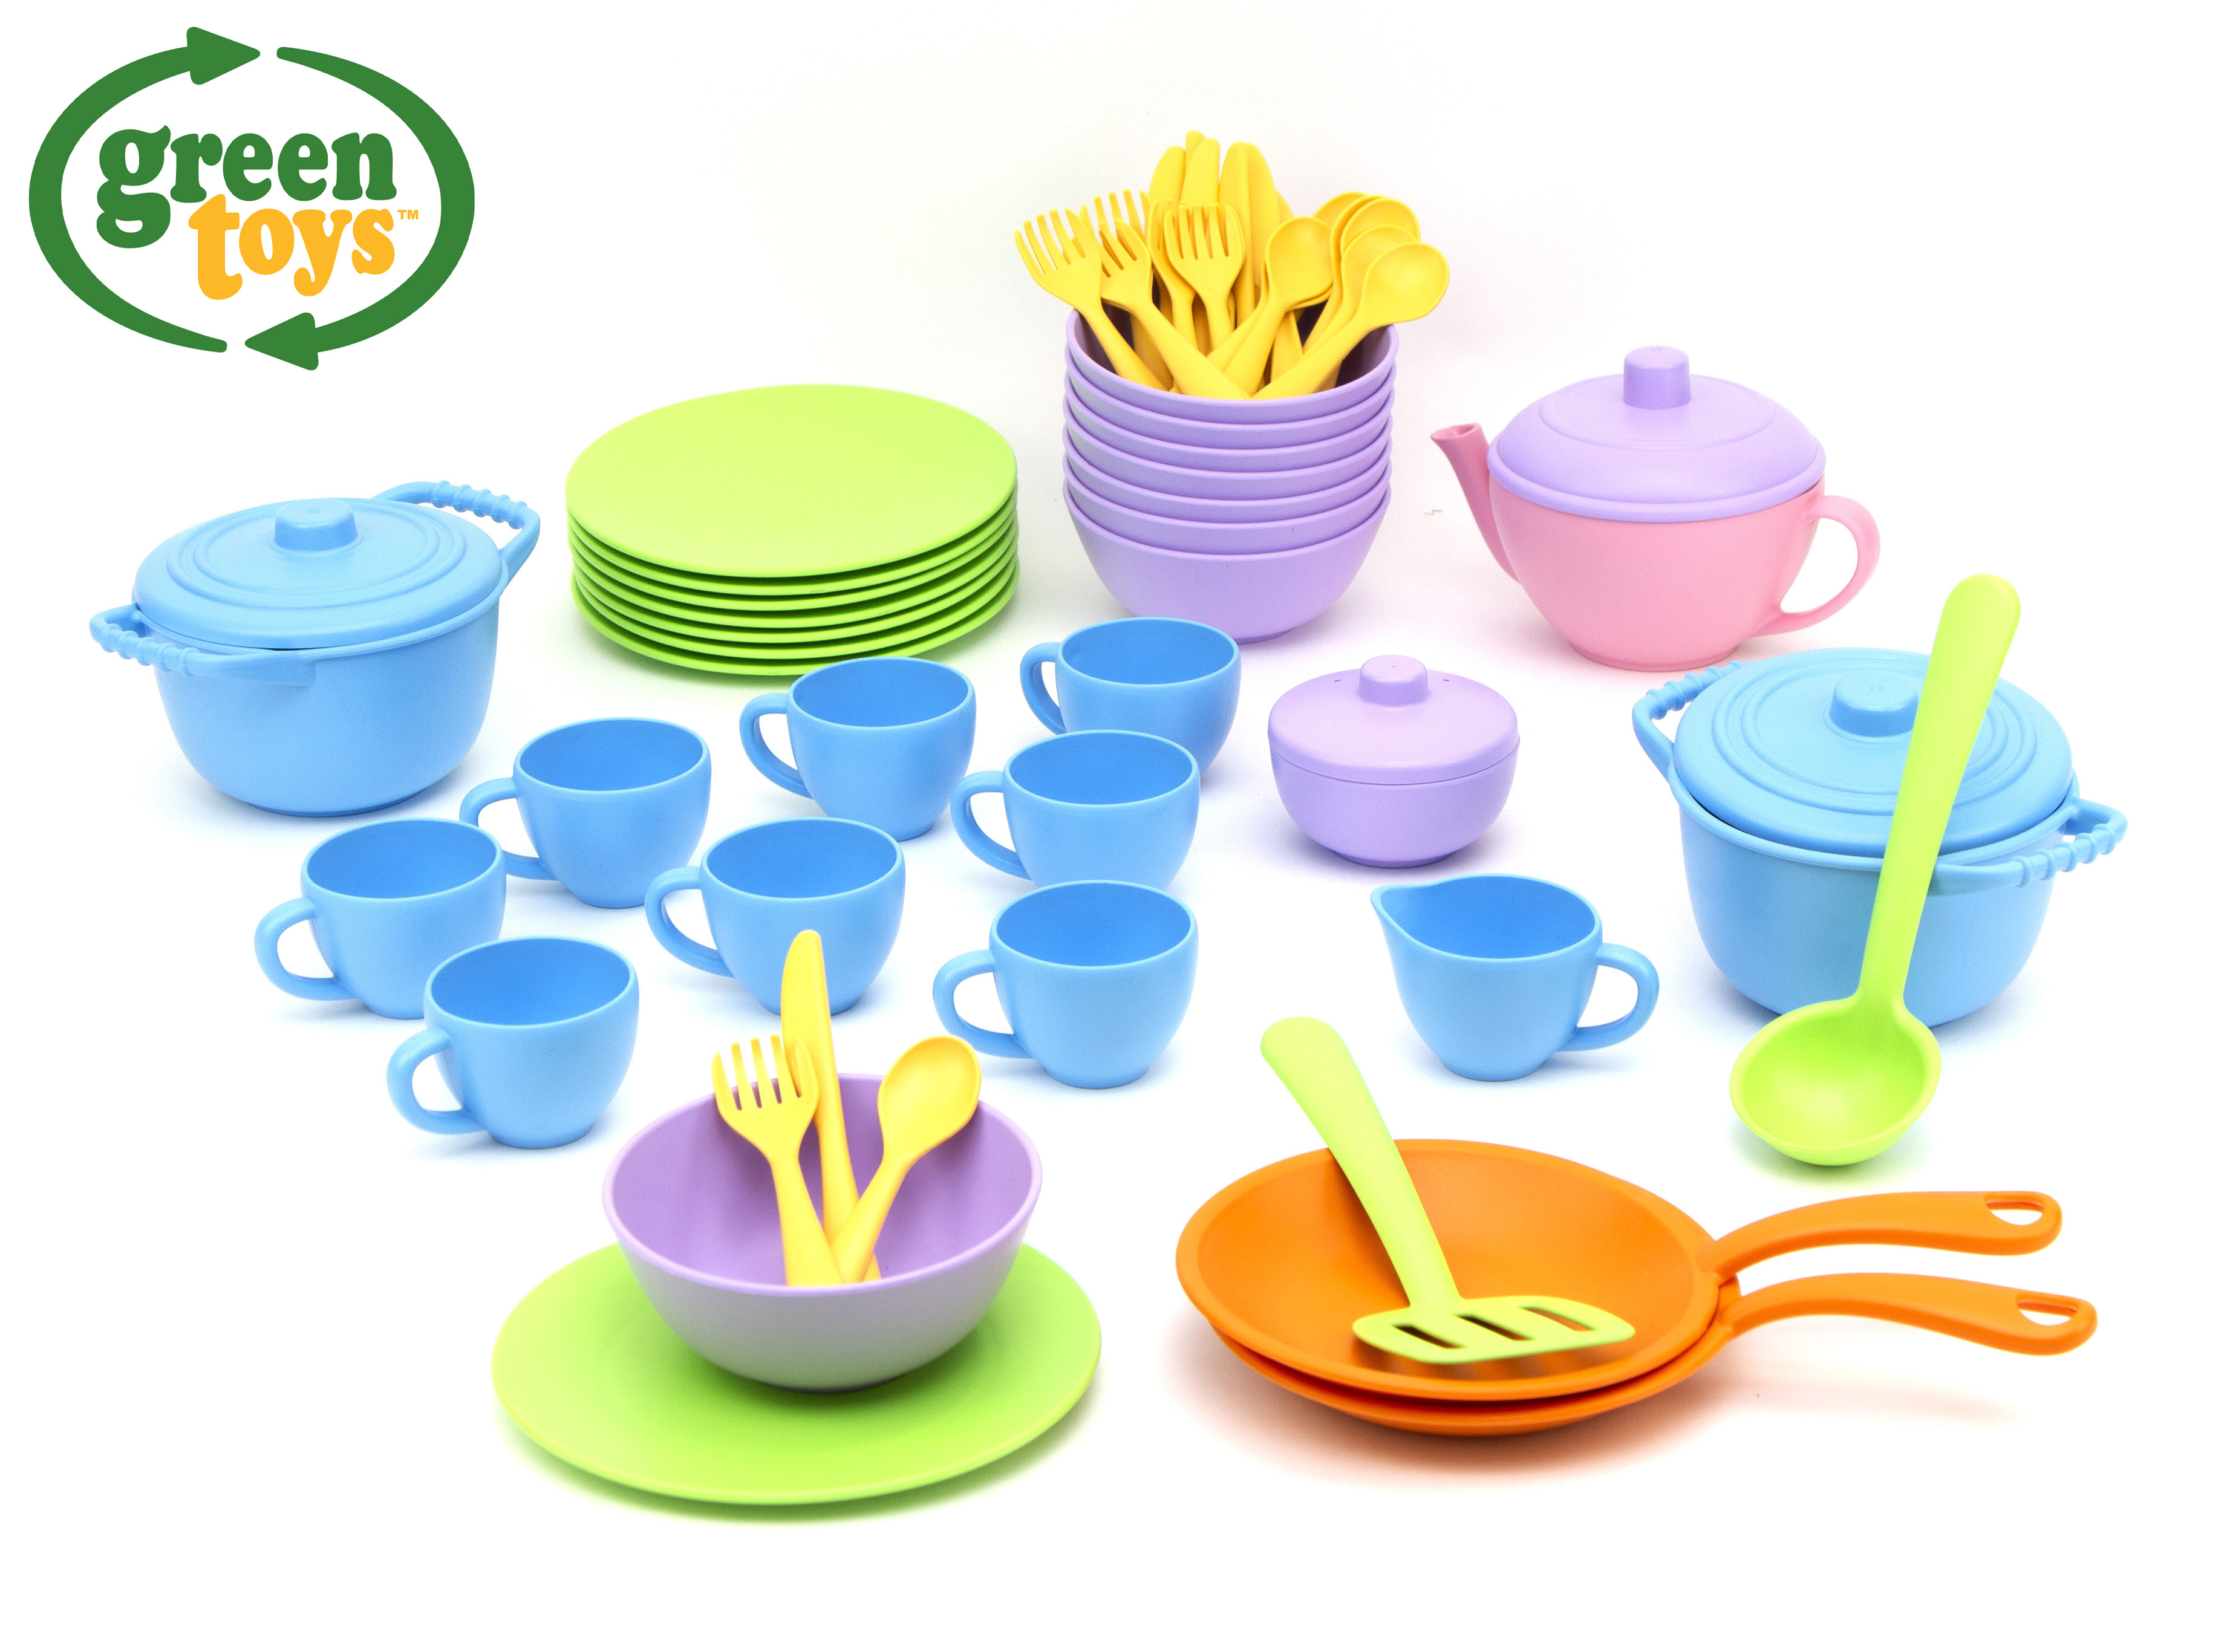 GREEN TOYS Riad set 61 ks